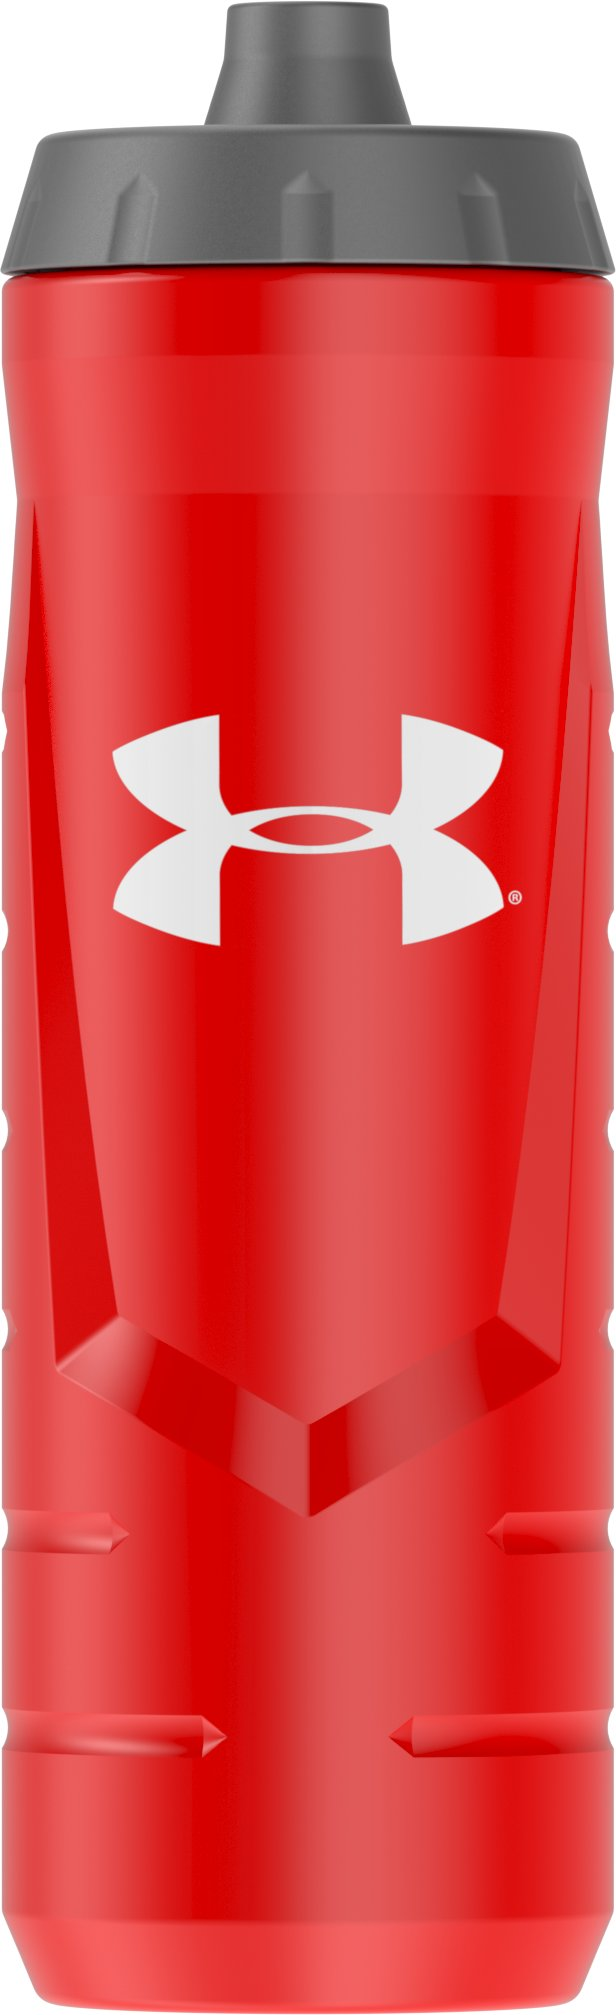 UA Sideline 32 oz. Squeeze Bottle, Red